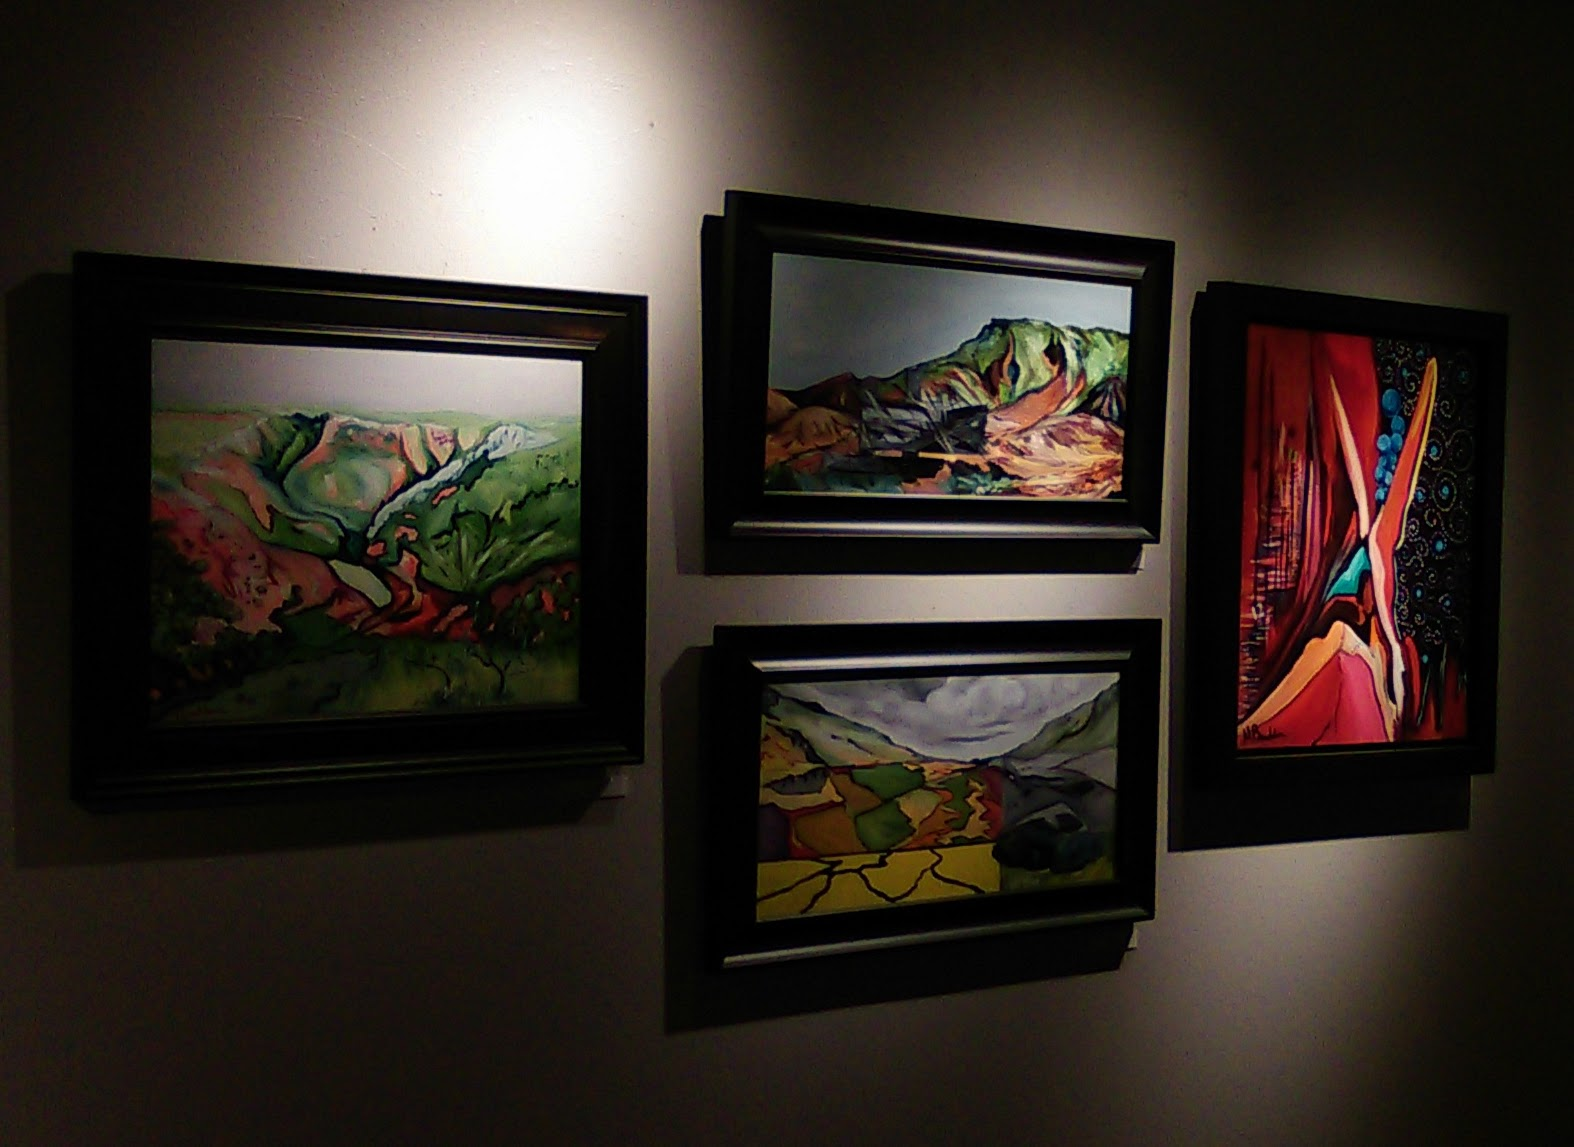 Oil paintings on display at Foundations Gallery, Claremore, OK